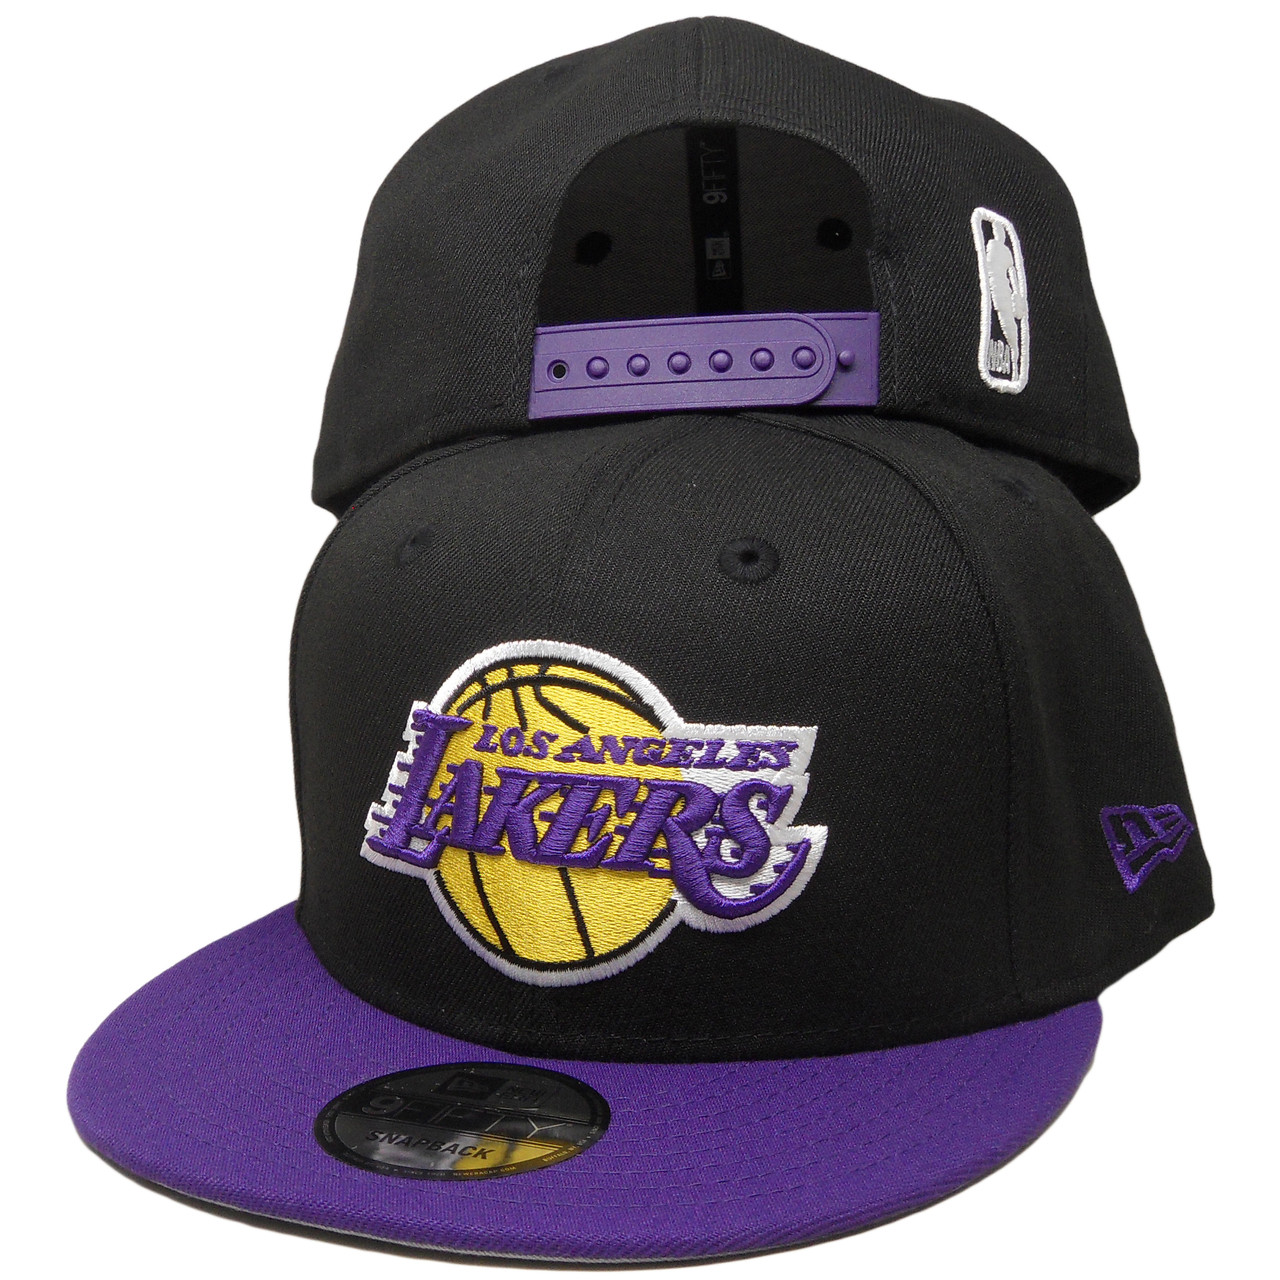 1a2a6d25ee1 Los Angeles Lakers New Era 9Fifty 2Tone 9Fifty Snapback - Black ...